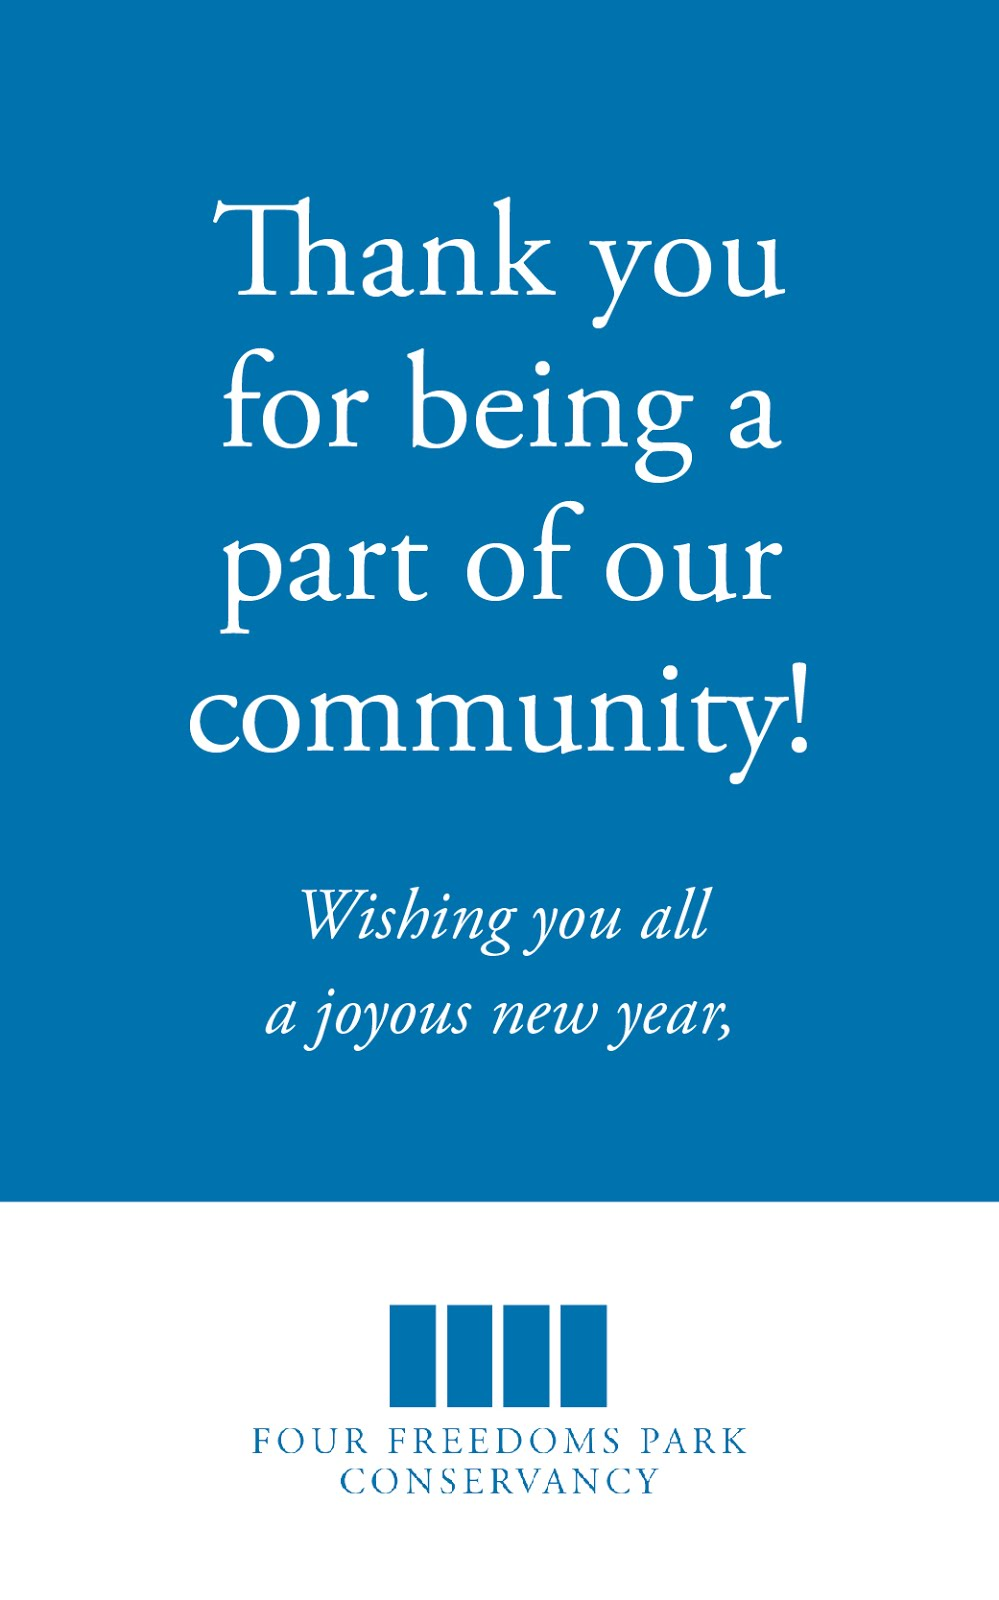 FDR Four Freedoms Park Conservancy Wishing You All A Joyous New Year